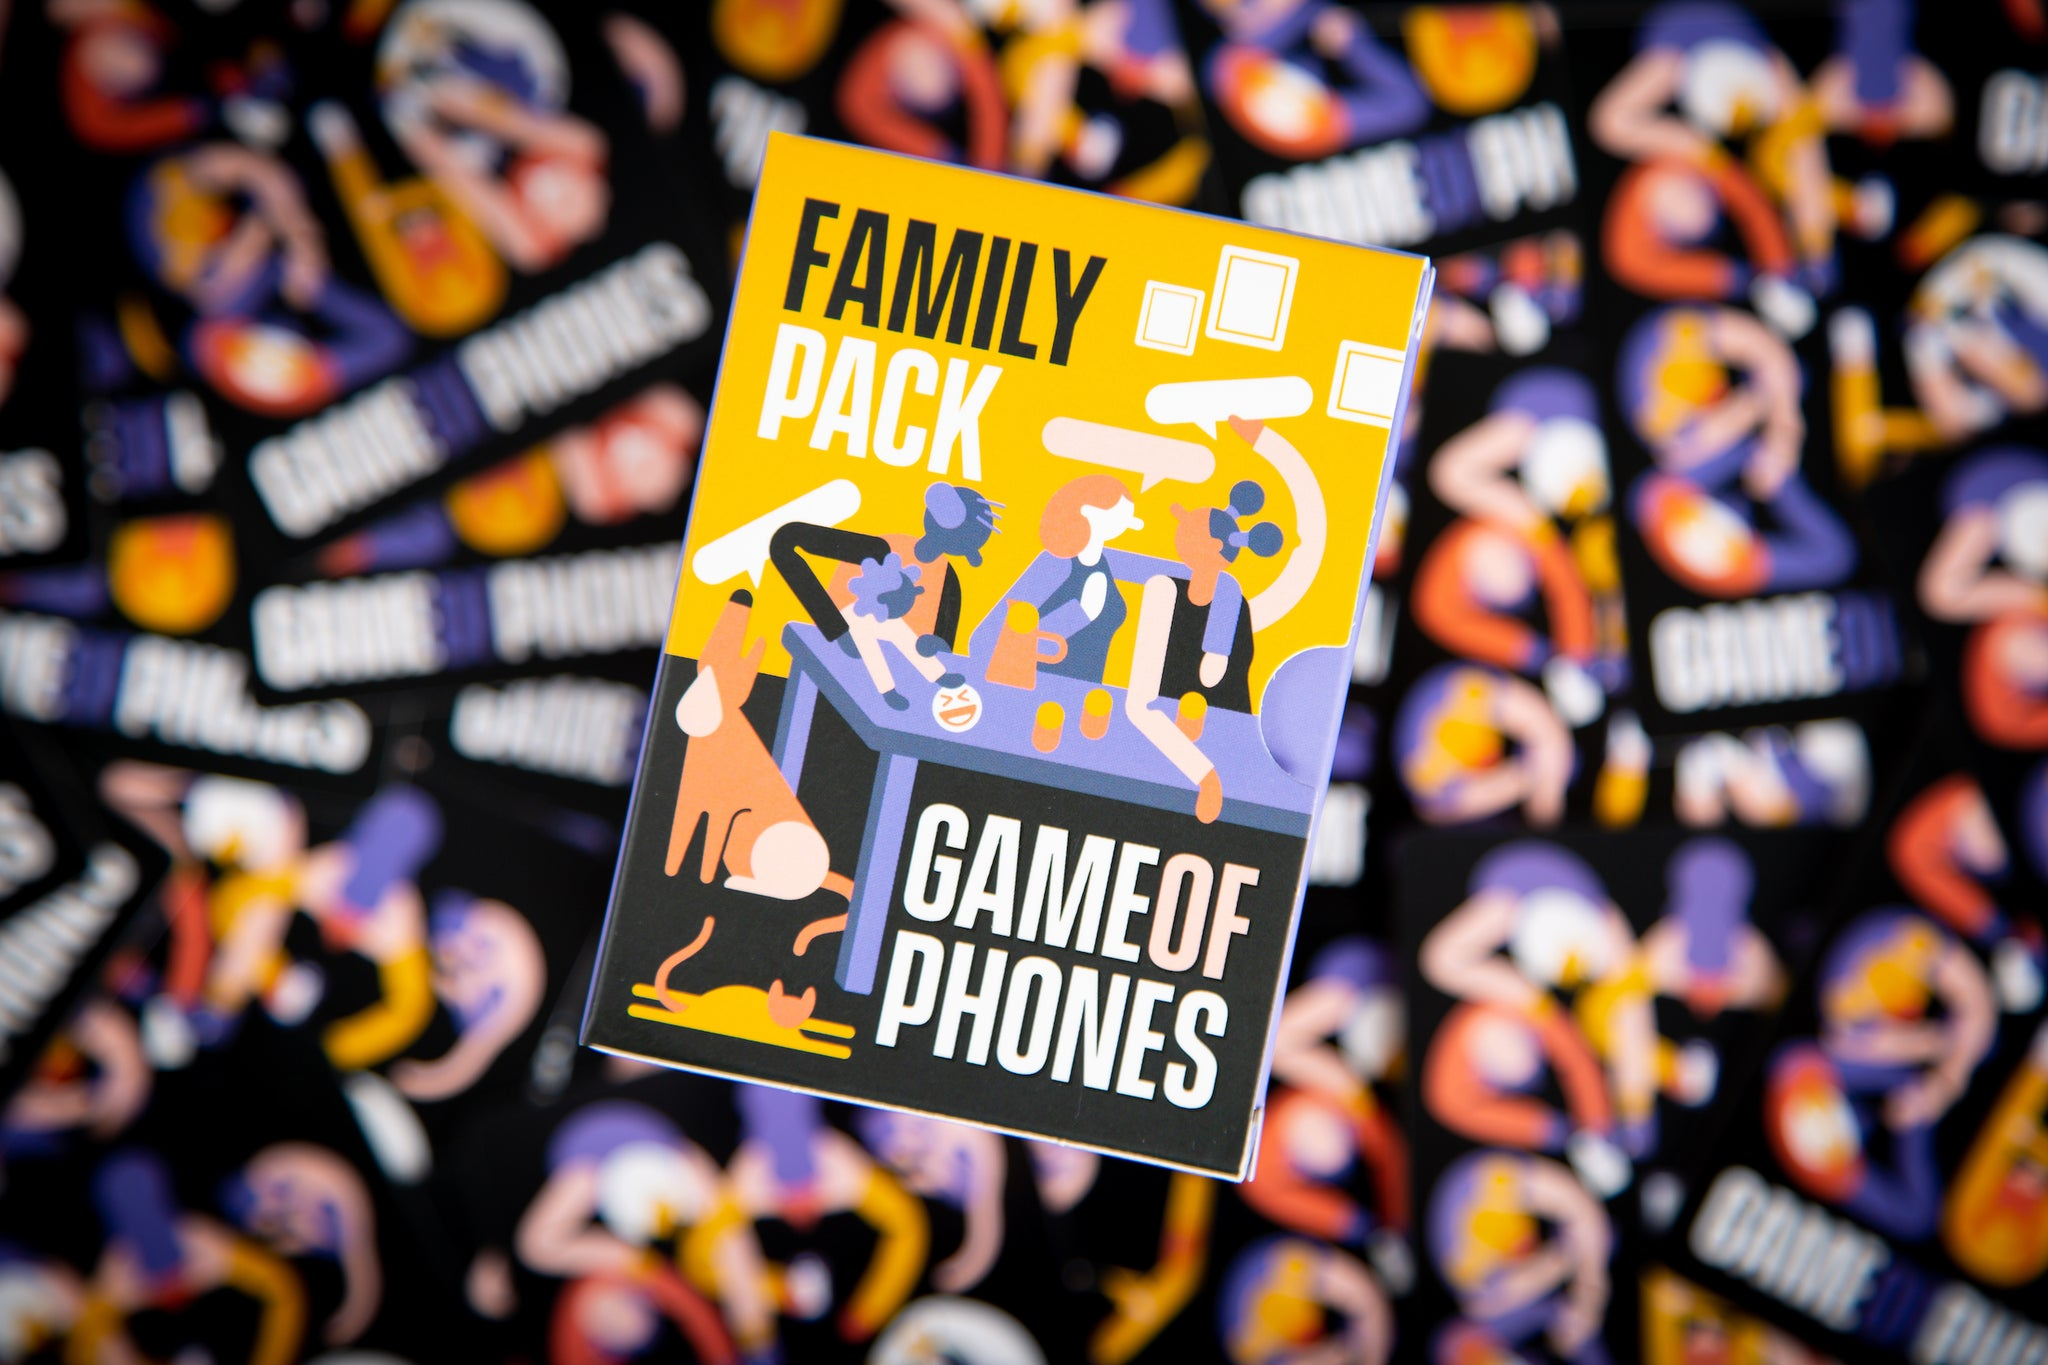 Game of Phones: The Family Mini Pack